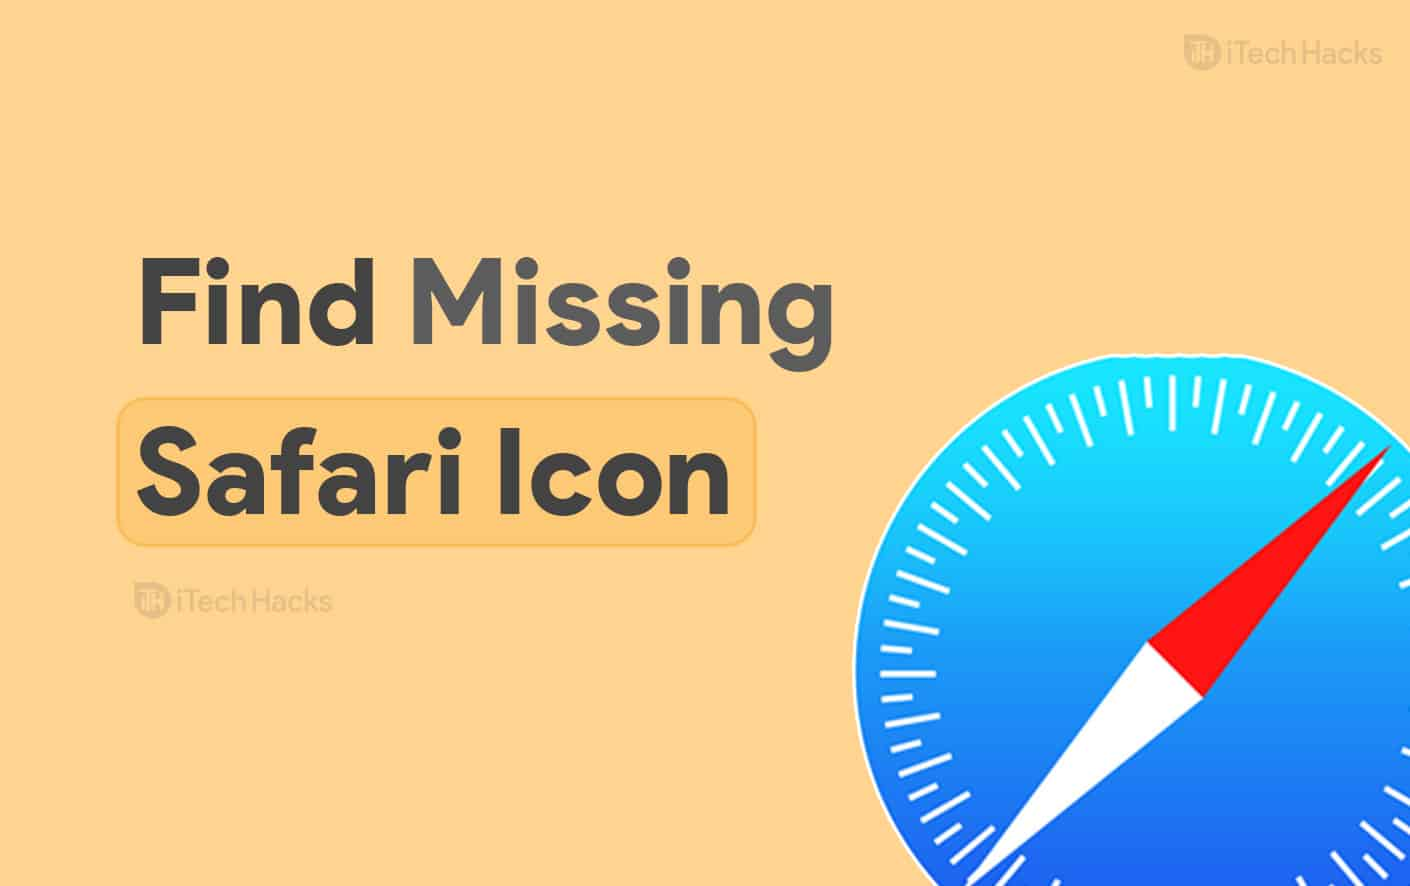 How to Find Missing Safari Icon: iPhone/iPad